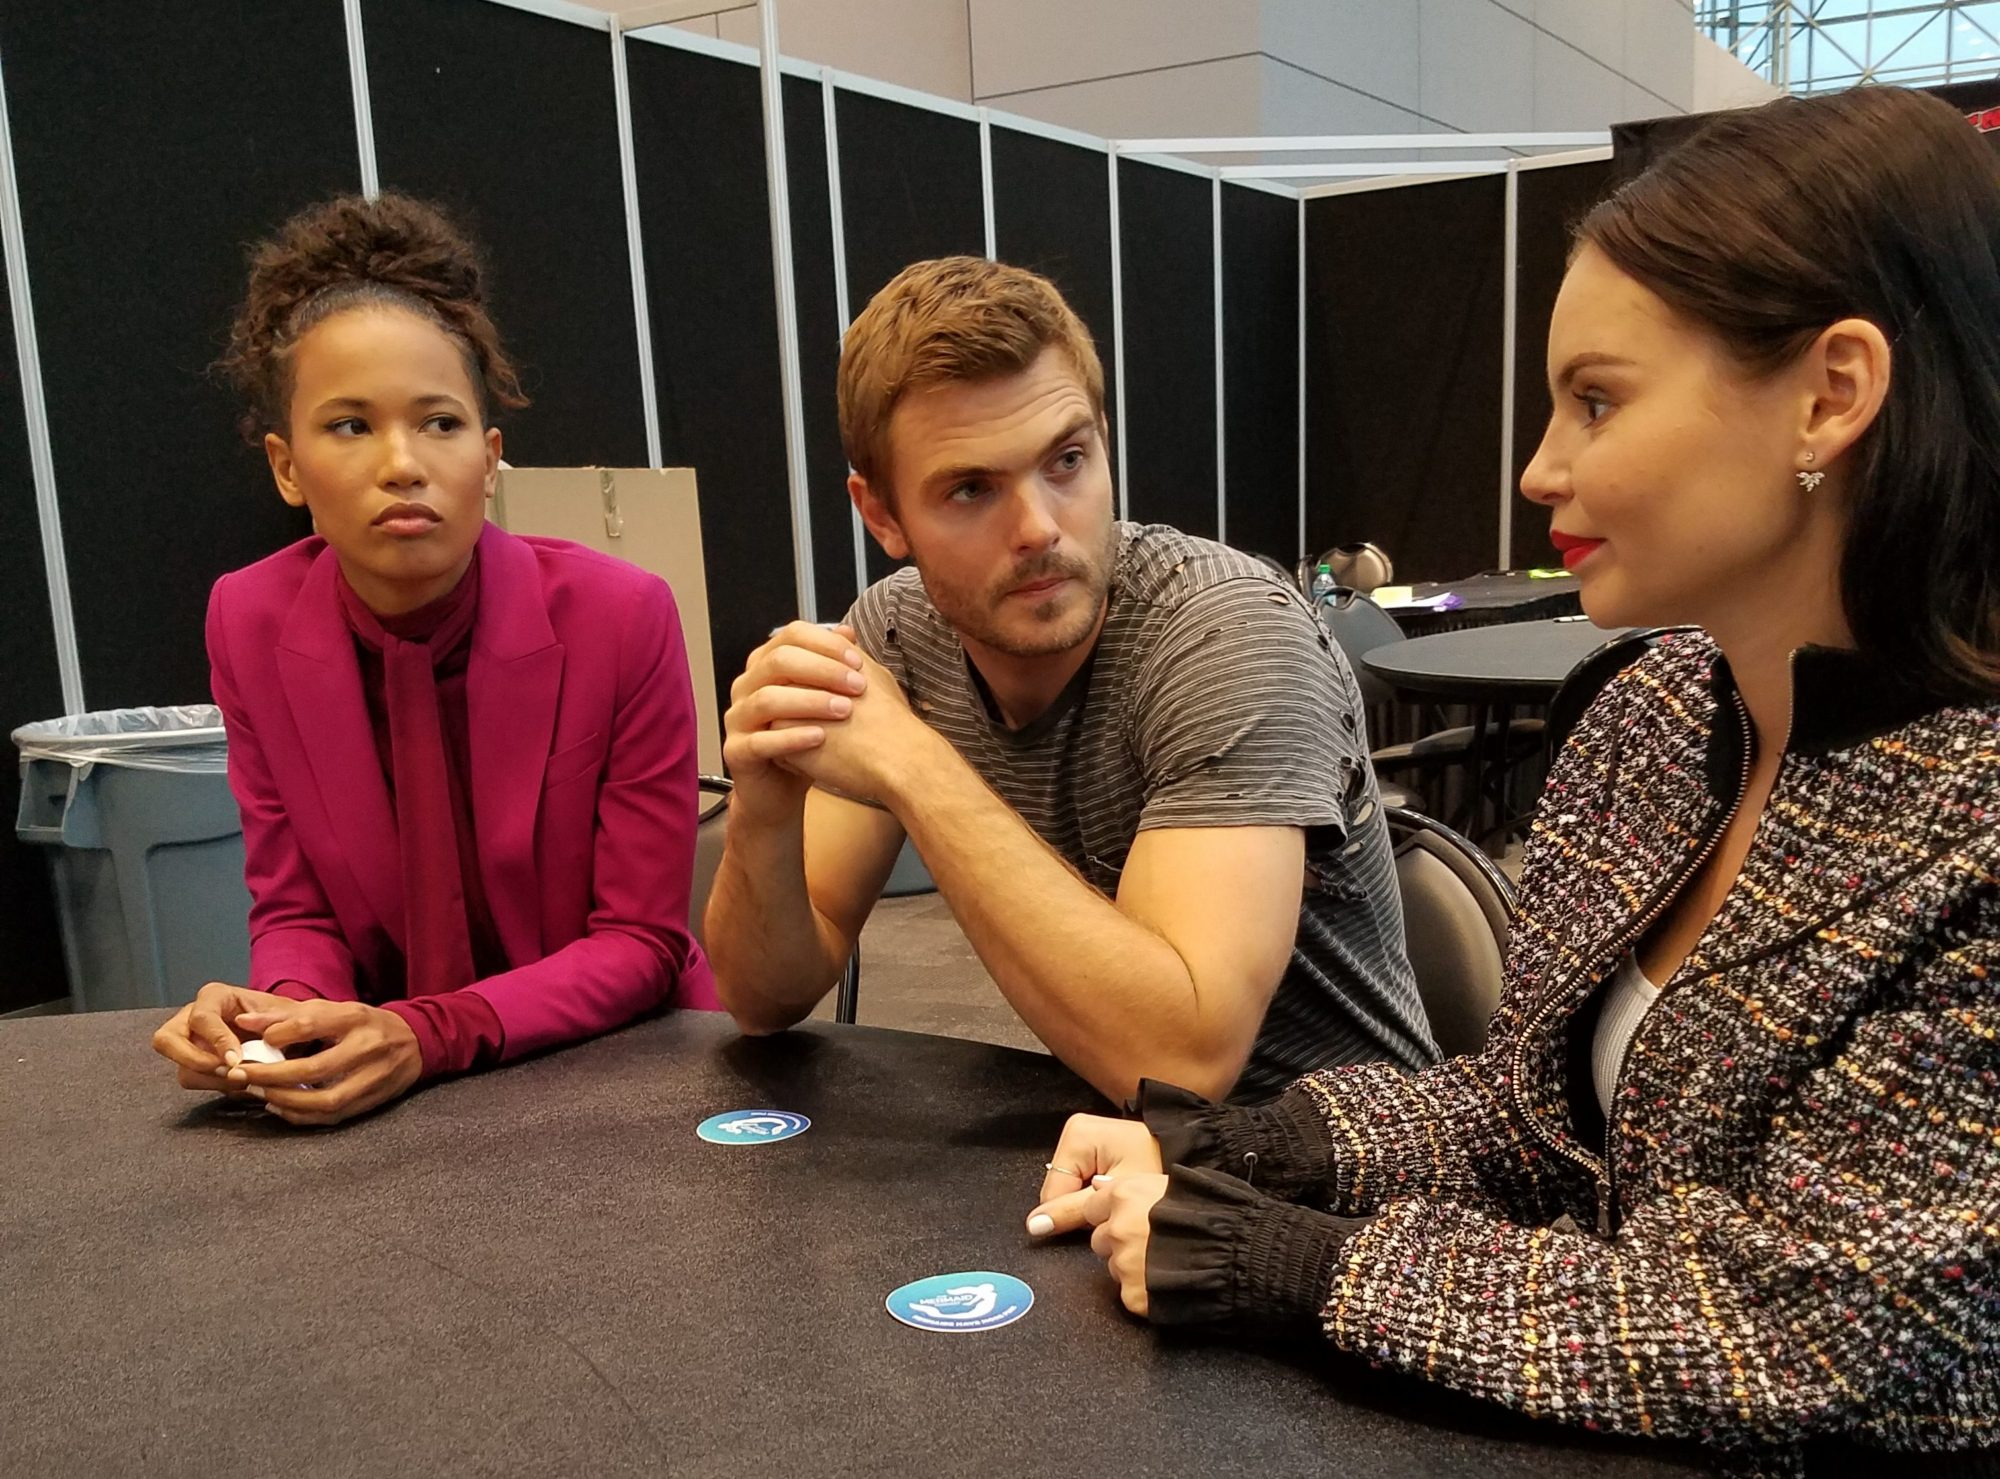 Cast of Siren at NYCC 2018